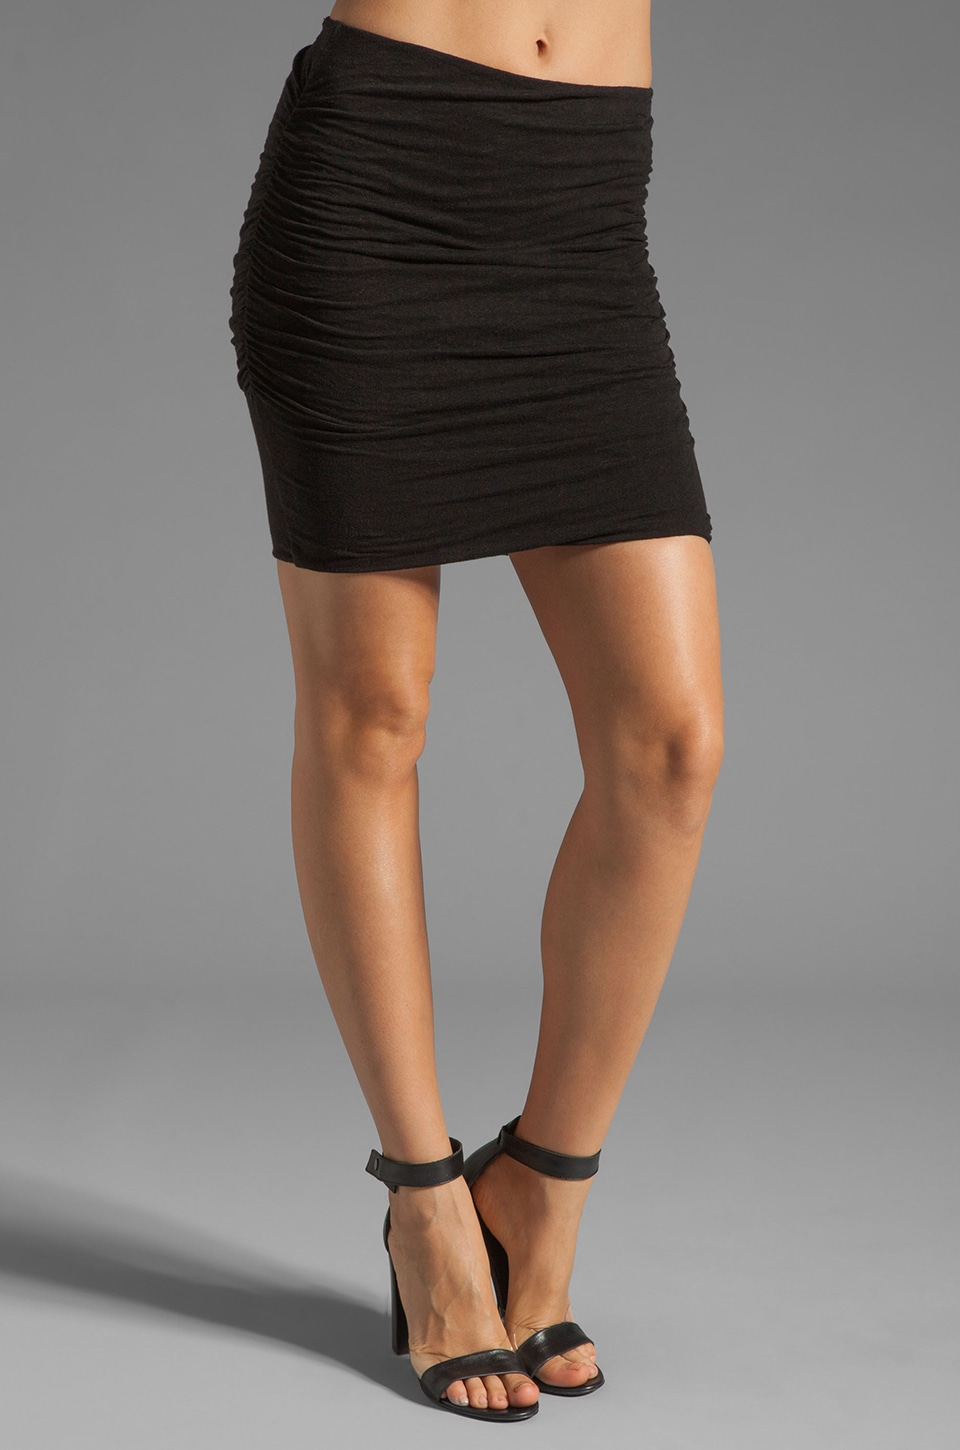 James Perse Linen Blend Ruched Mini Skirt in Black